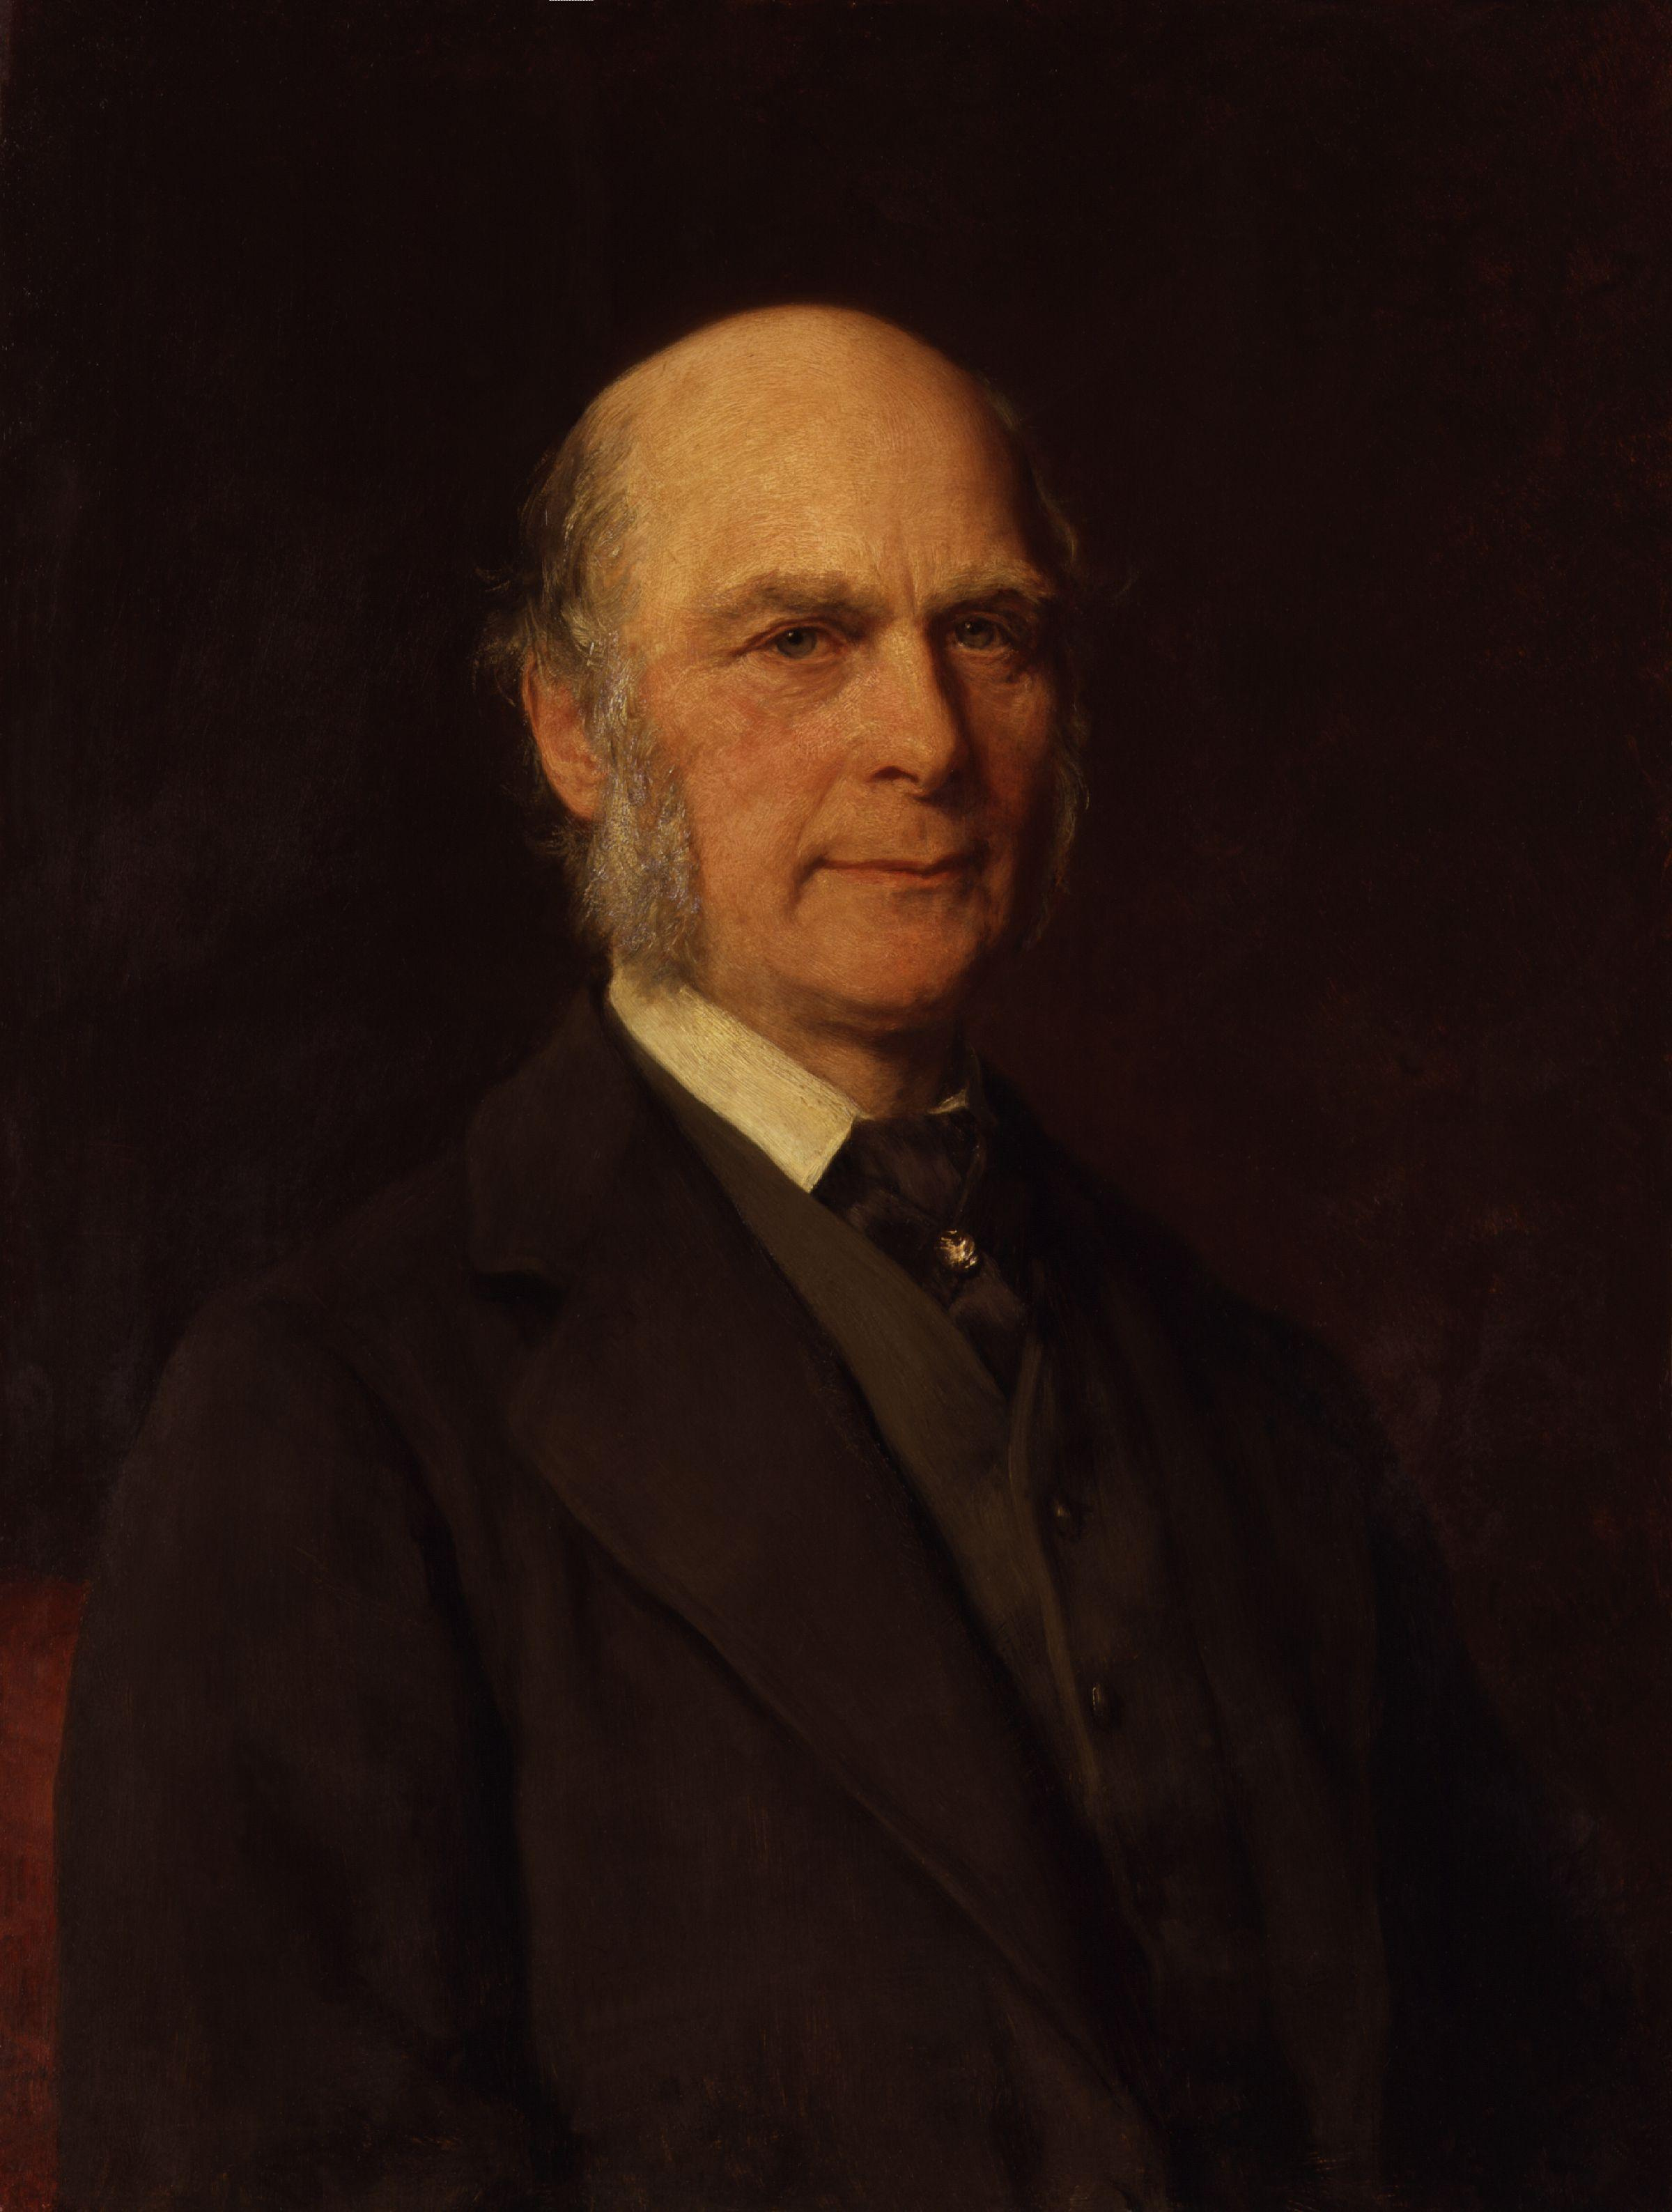 essays on eugenics francis galton This material has been provided by the royal college of physicians of edinburgh the original may be consulted at the royal college of physicians of edinburgh.